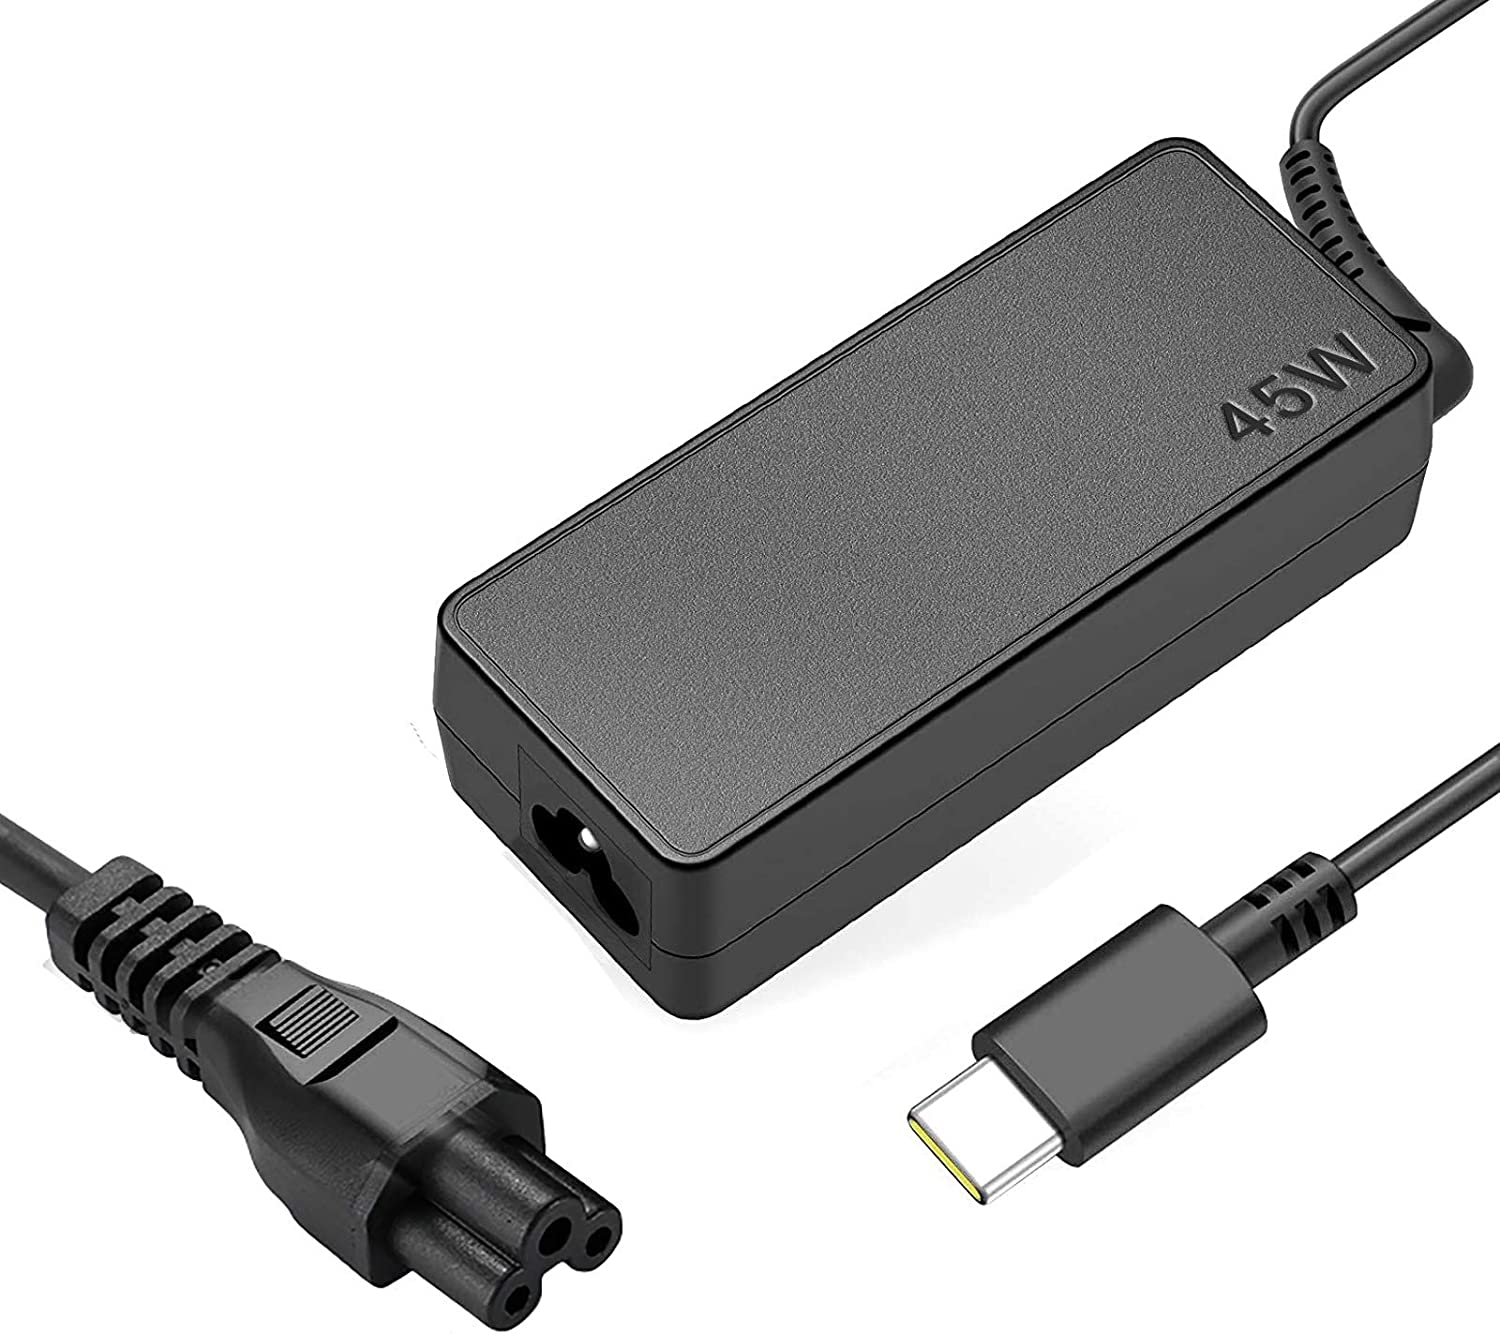 45W USB-C Charger for Lenovo Yoga C630 C940 C910 720 720-13IKB 720S 730 730-13ik 920 920-13ikb Chromebook S330 C330 330e 100e N23 ThinkPad X1 Carbon T470s T480 T480s T580 T580s AC Adapter Power Supply